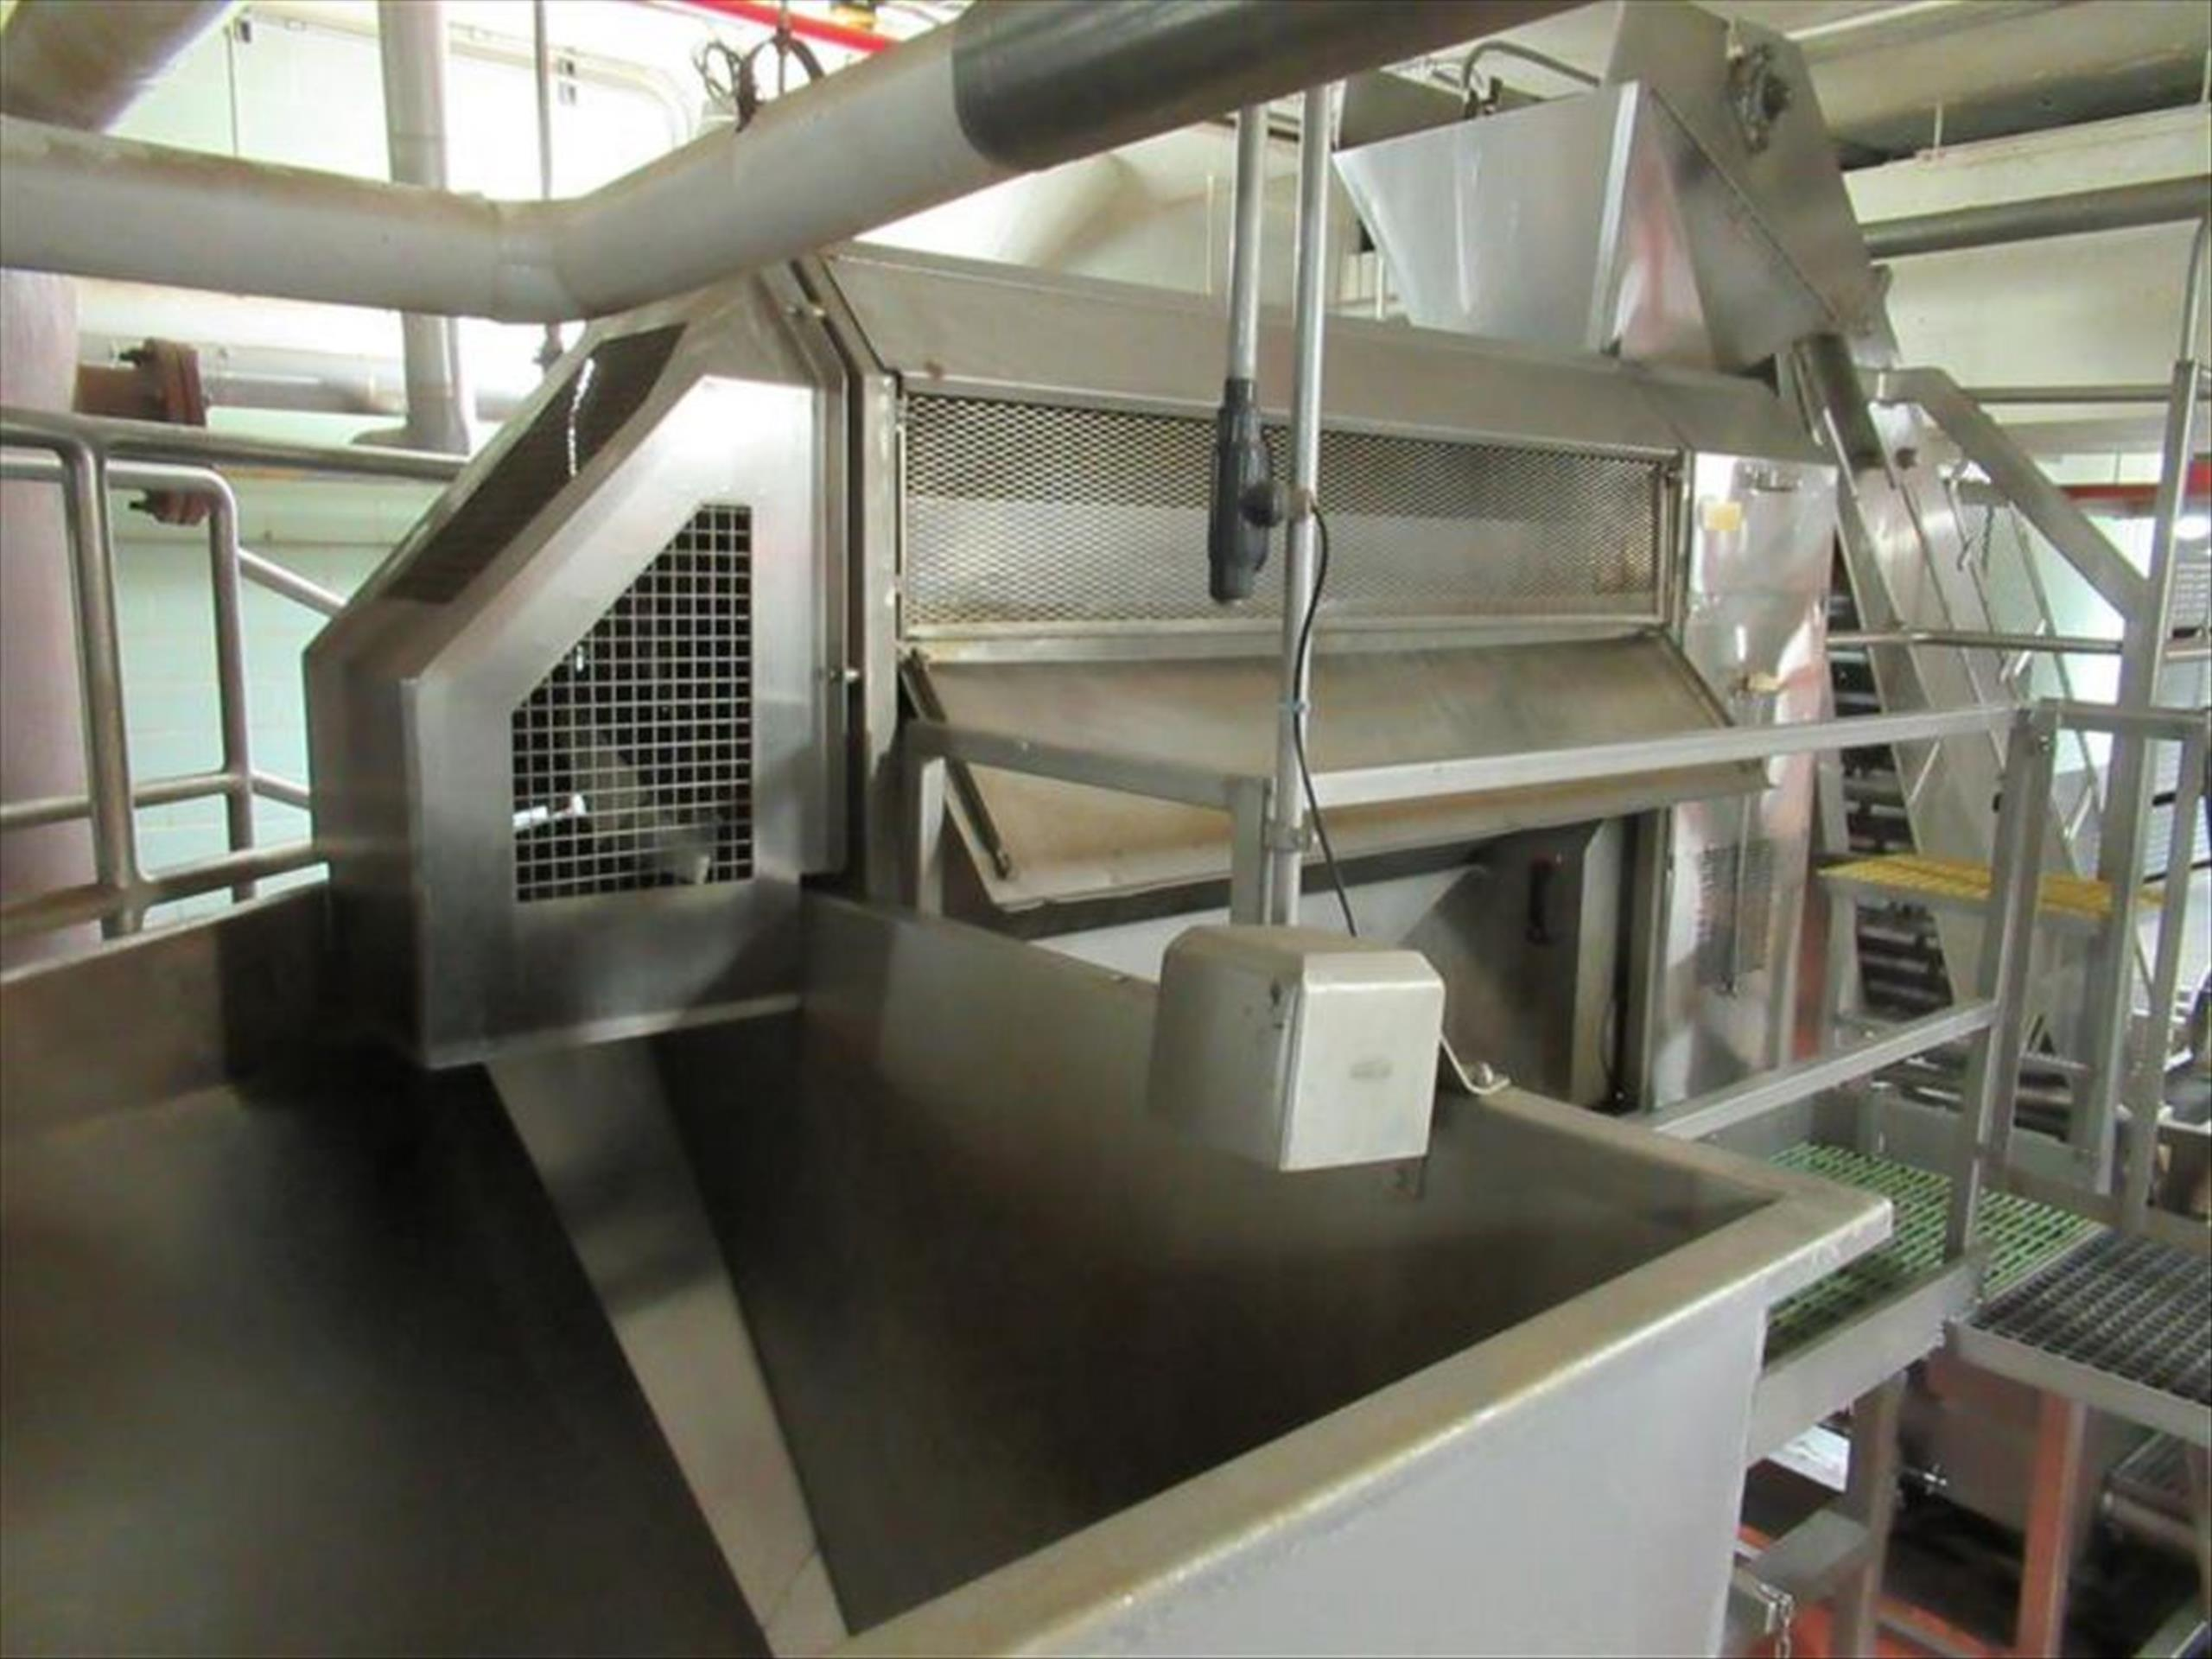 Brush washer with screw continuous washing / scrubbing machine, 6 brush rollers, spray bar, approx - Image 2 of 2